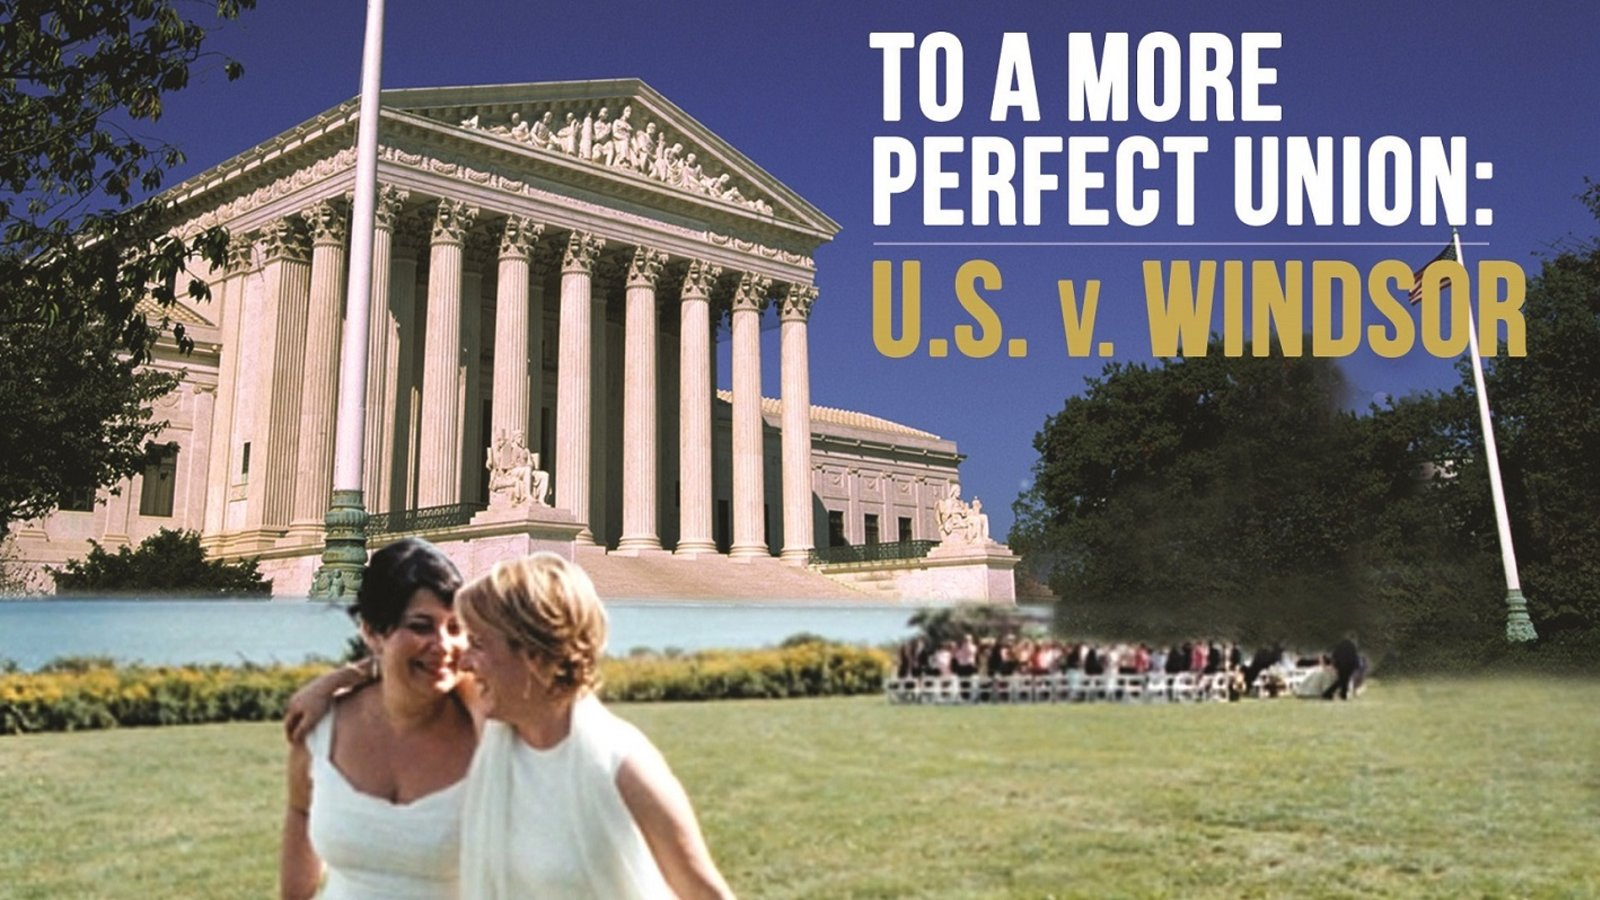 To a More Perfect Union: U.S. v. Windsor - A Pivotal Case in the Marriage Equality Movement